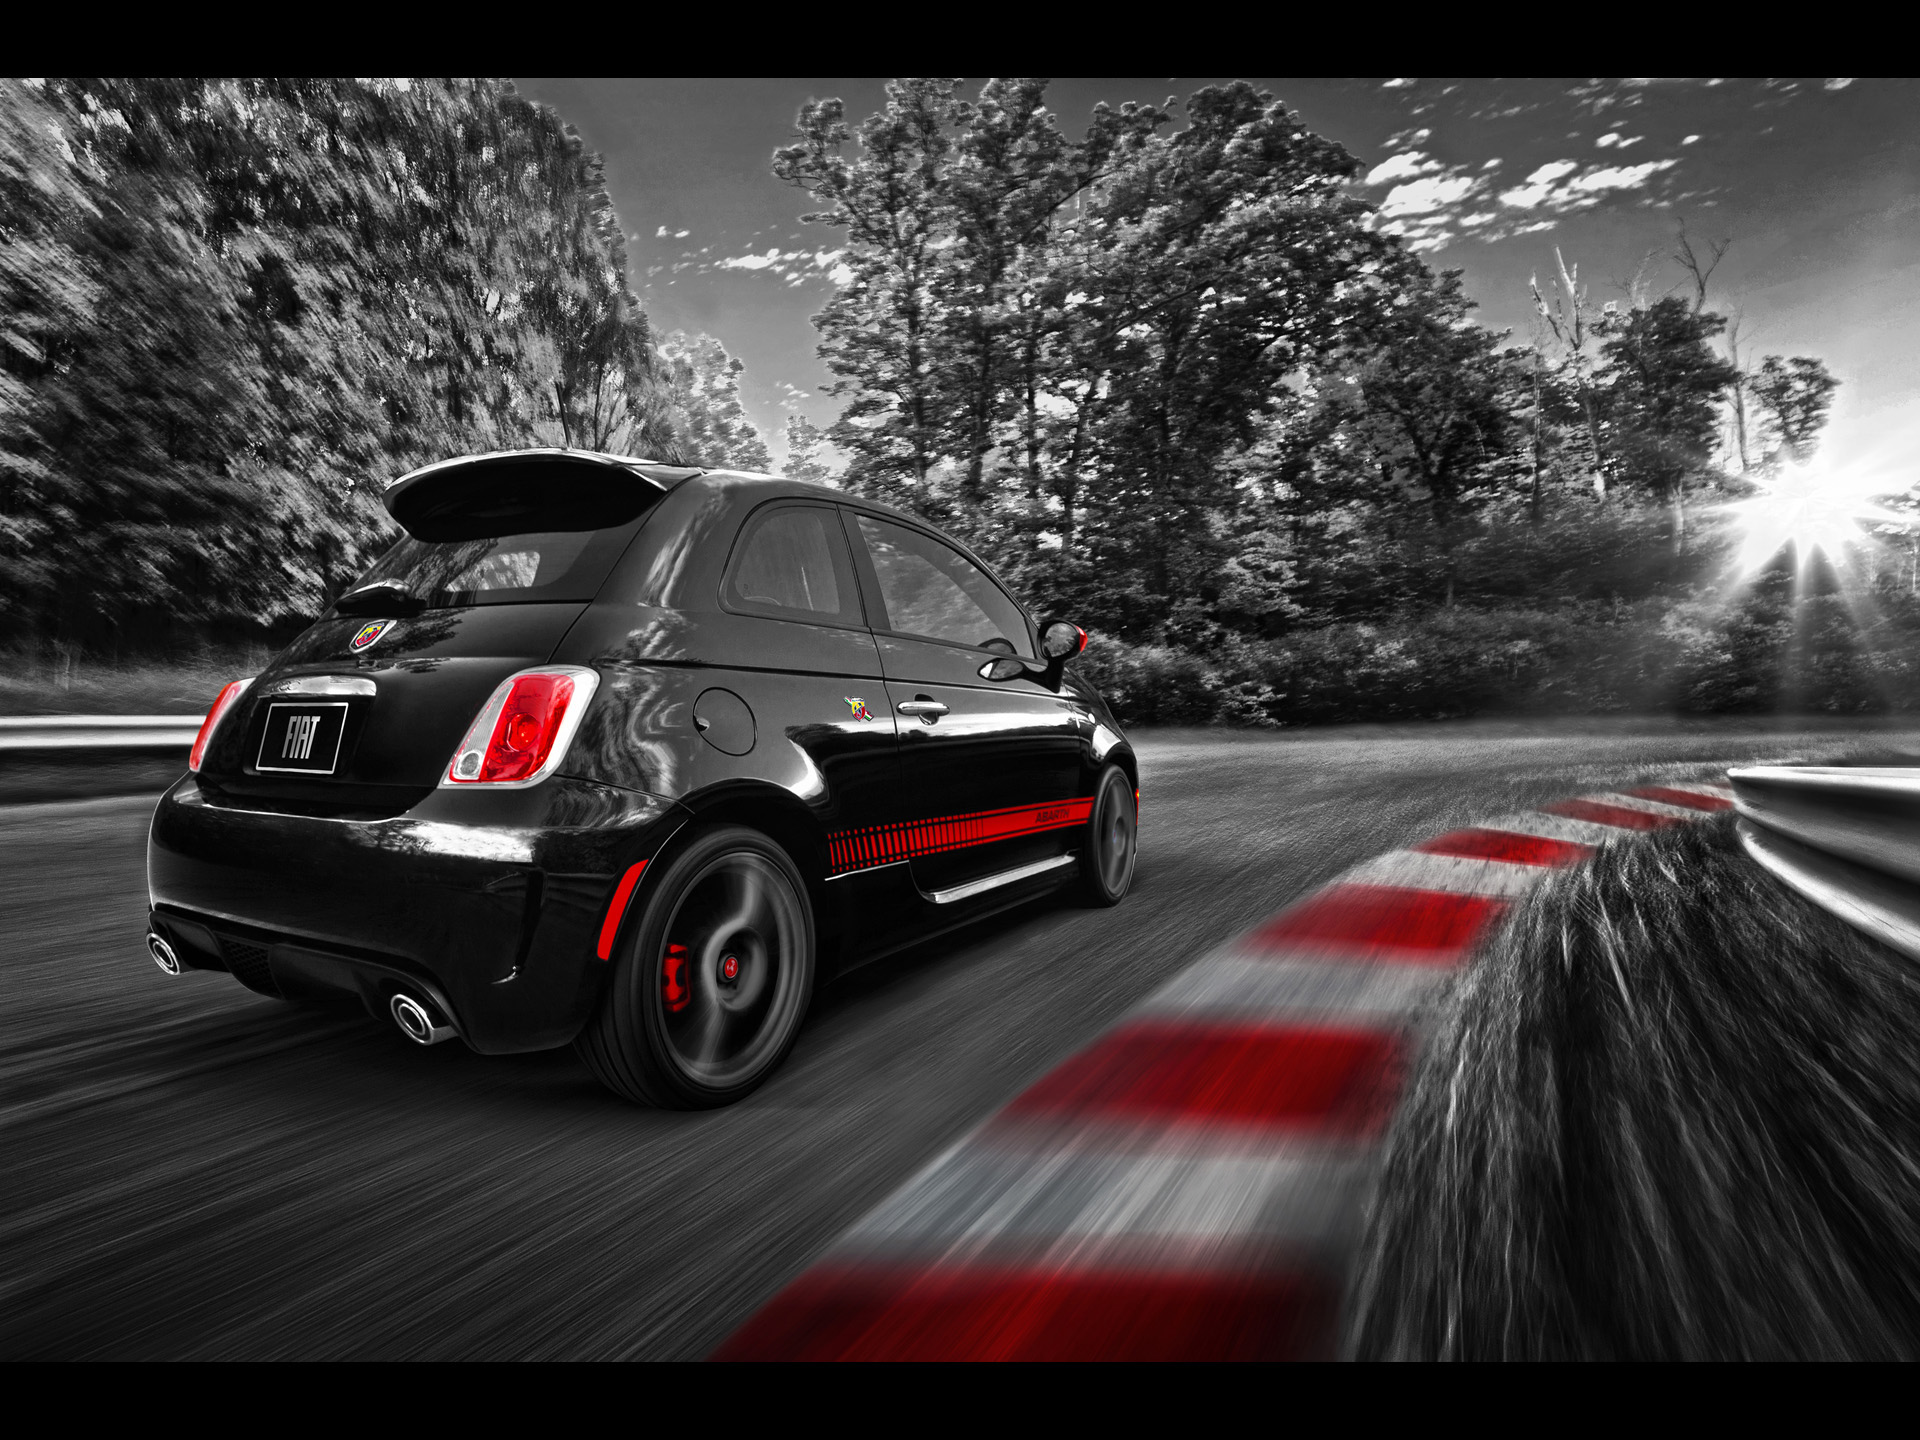 1920x1440 Fiat 500 Abarth Race Track Desktop Pc And Mac